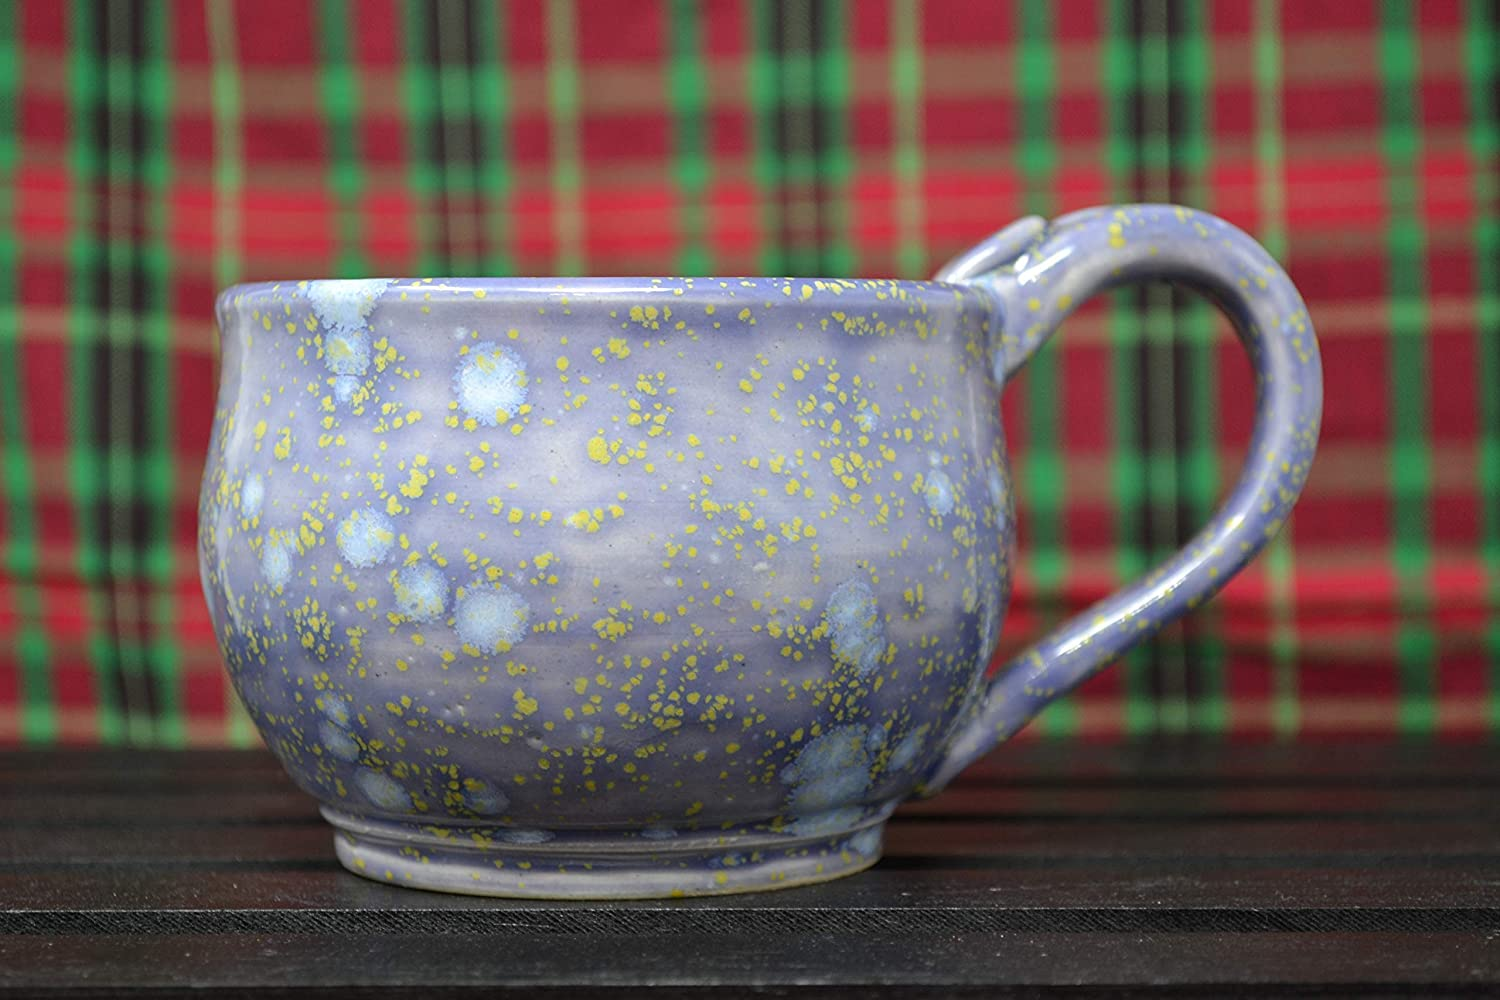 Handmade shopping White Stoneware Cup Mug Super sale Glazed in with Light Blue Cryst